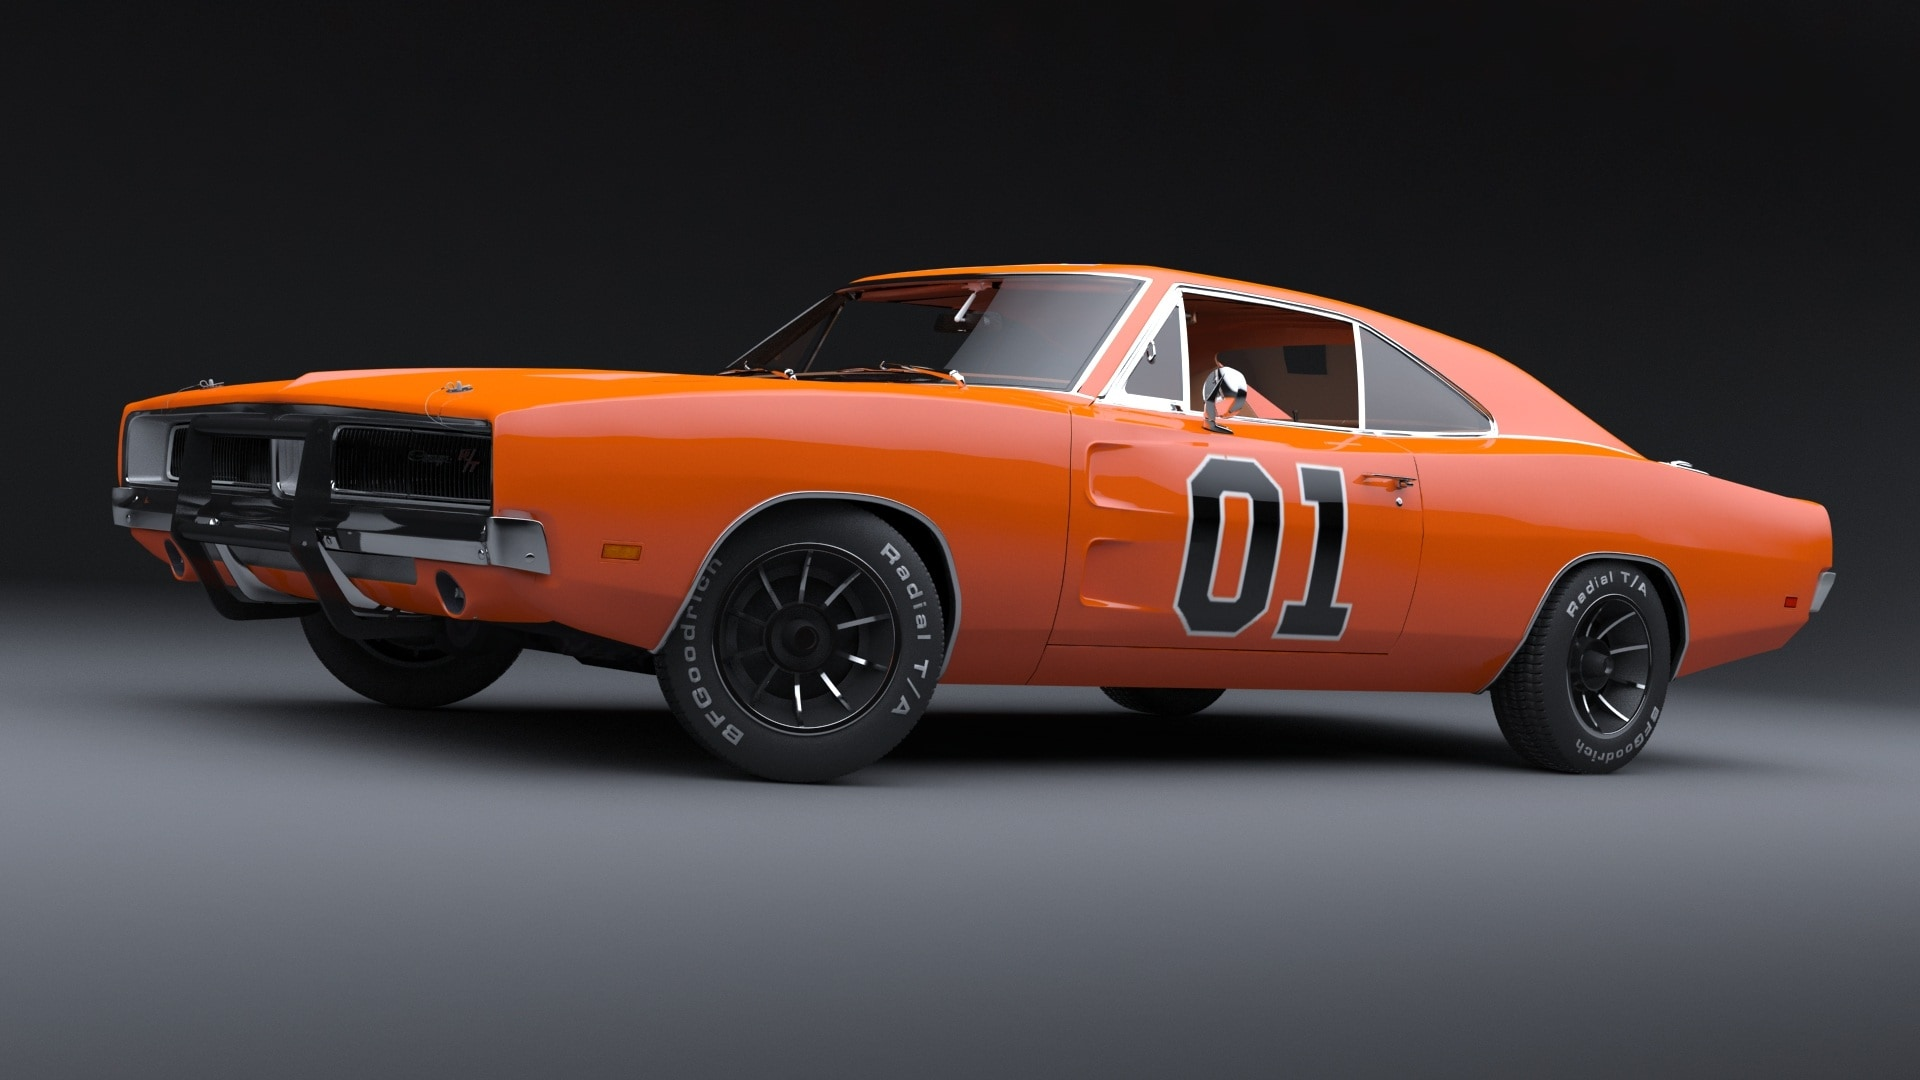 Dodge Charger Car Wallpapers Orange 01 Diecast Coupe Free Image Peakpx